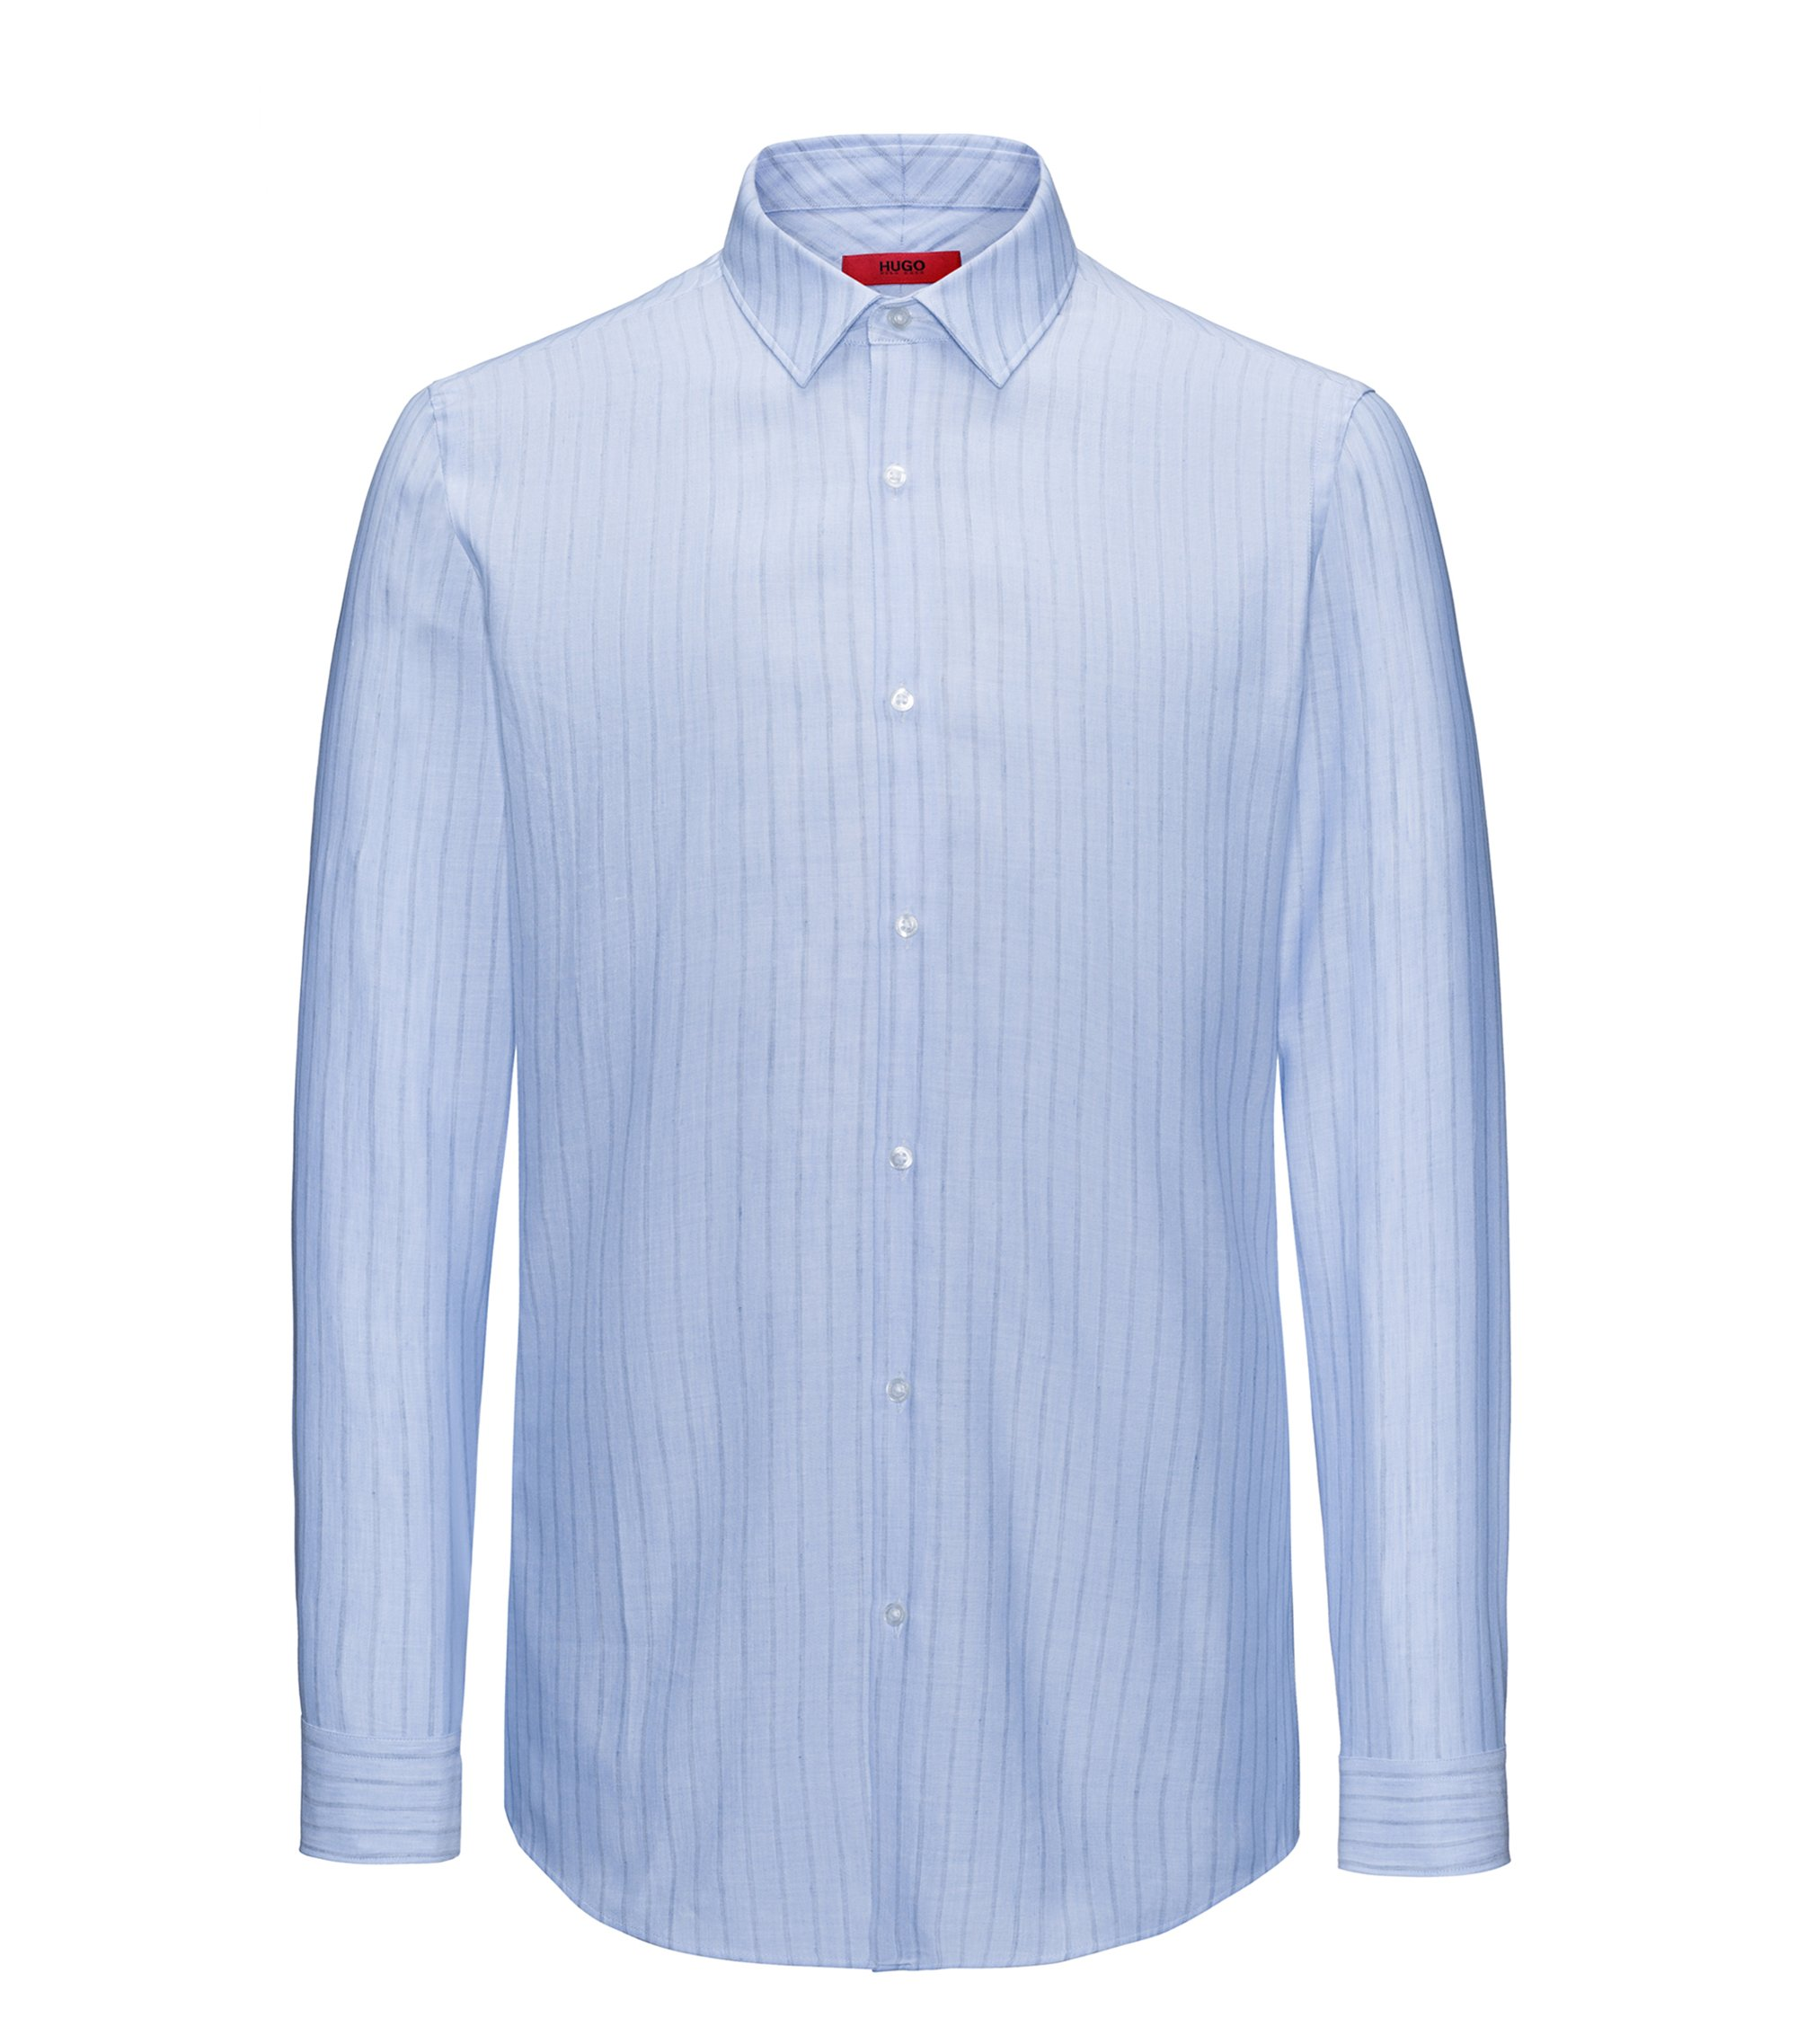 Striped slim-fit Oxford shirt in cotton blended with linen, Light Blue